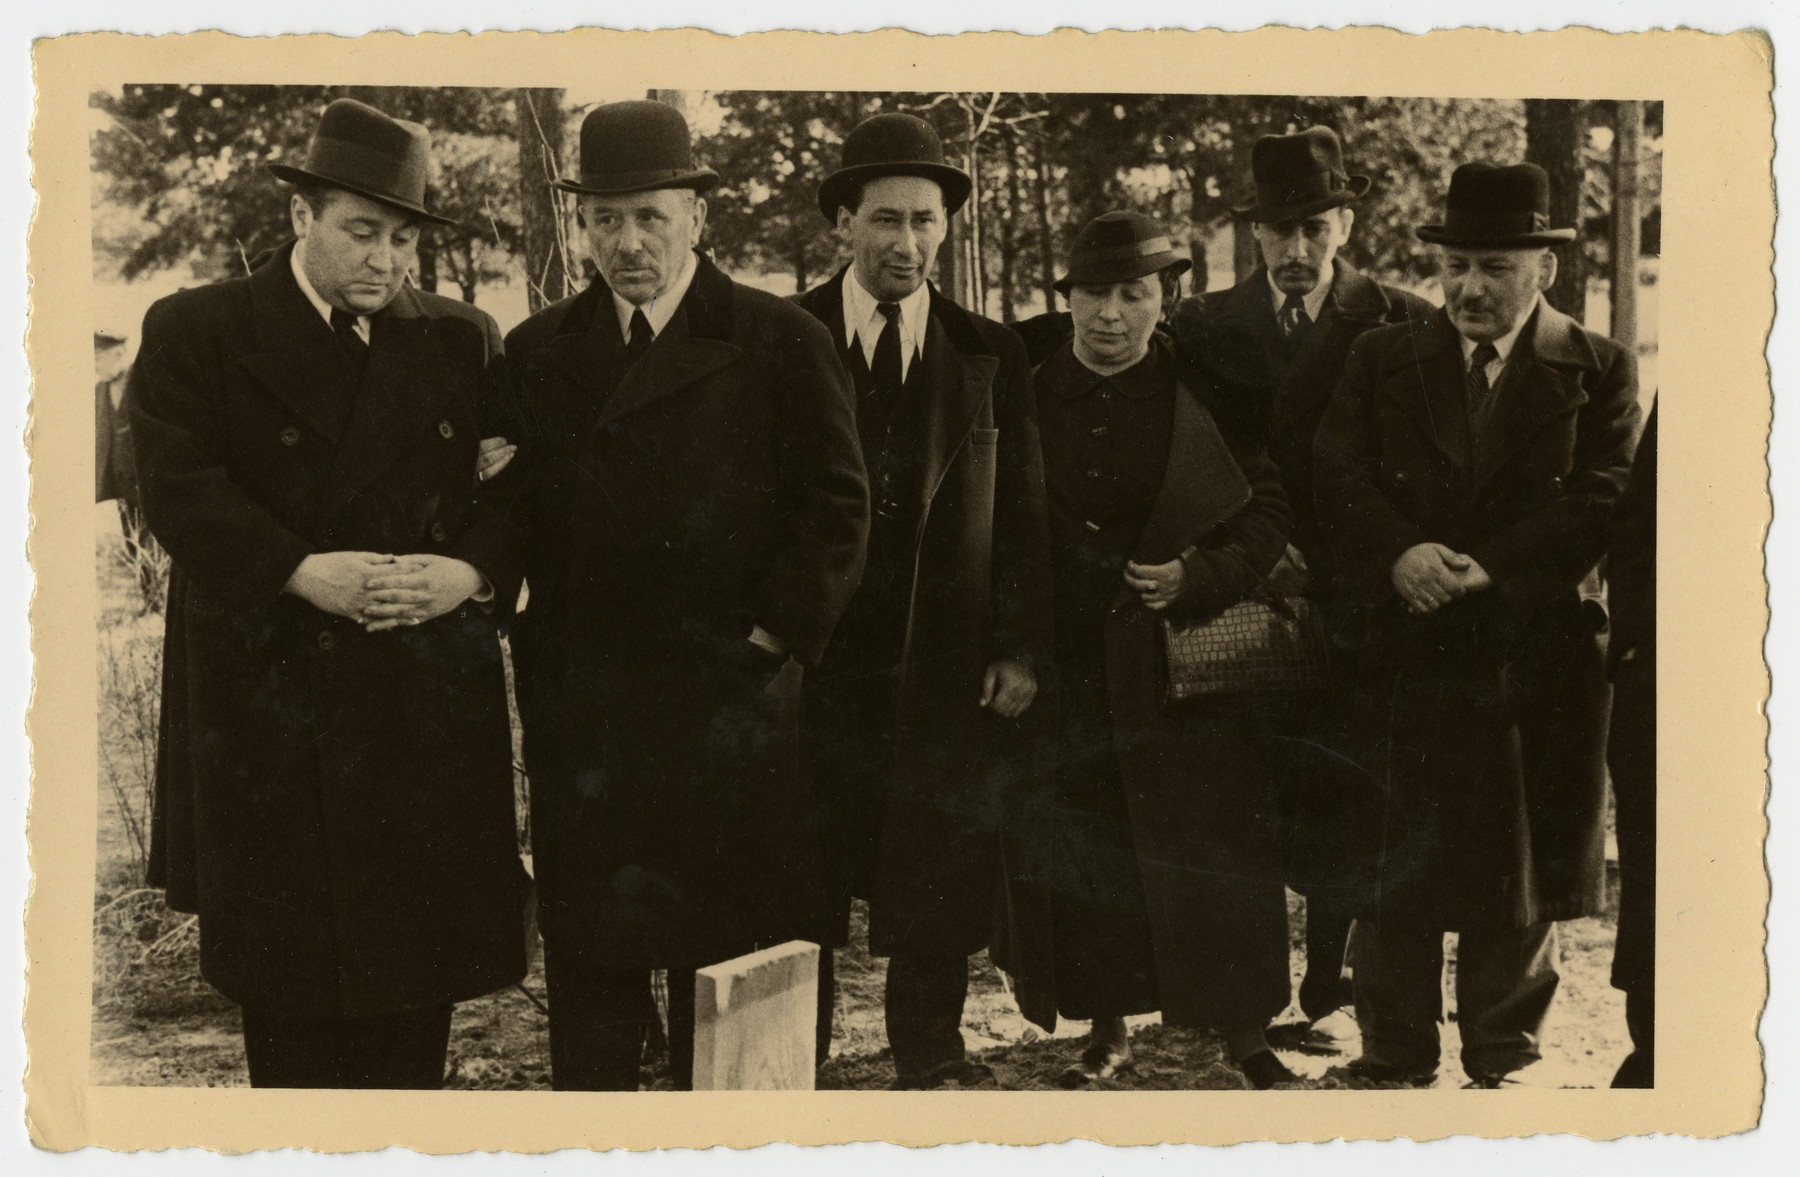 Mourners stand by the grave of Freida Albin.  Pictured are Papa, Aron, Zilla, Harri, and Abraham.